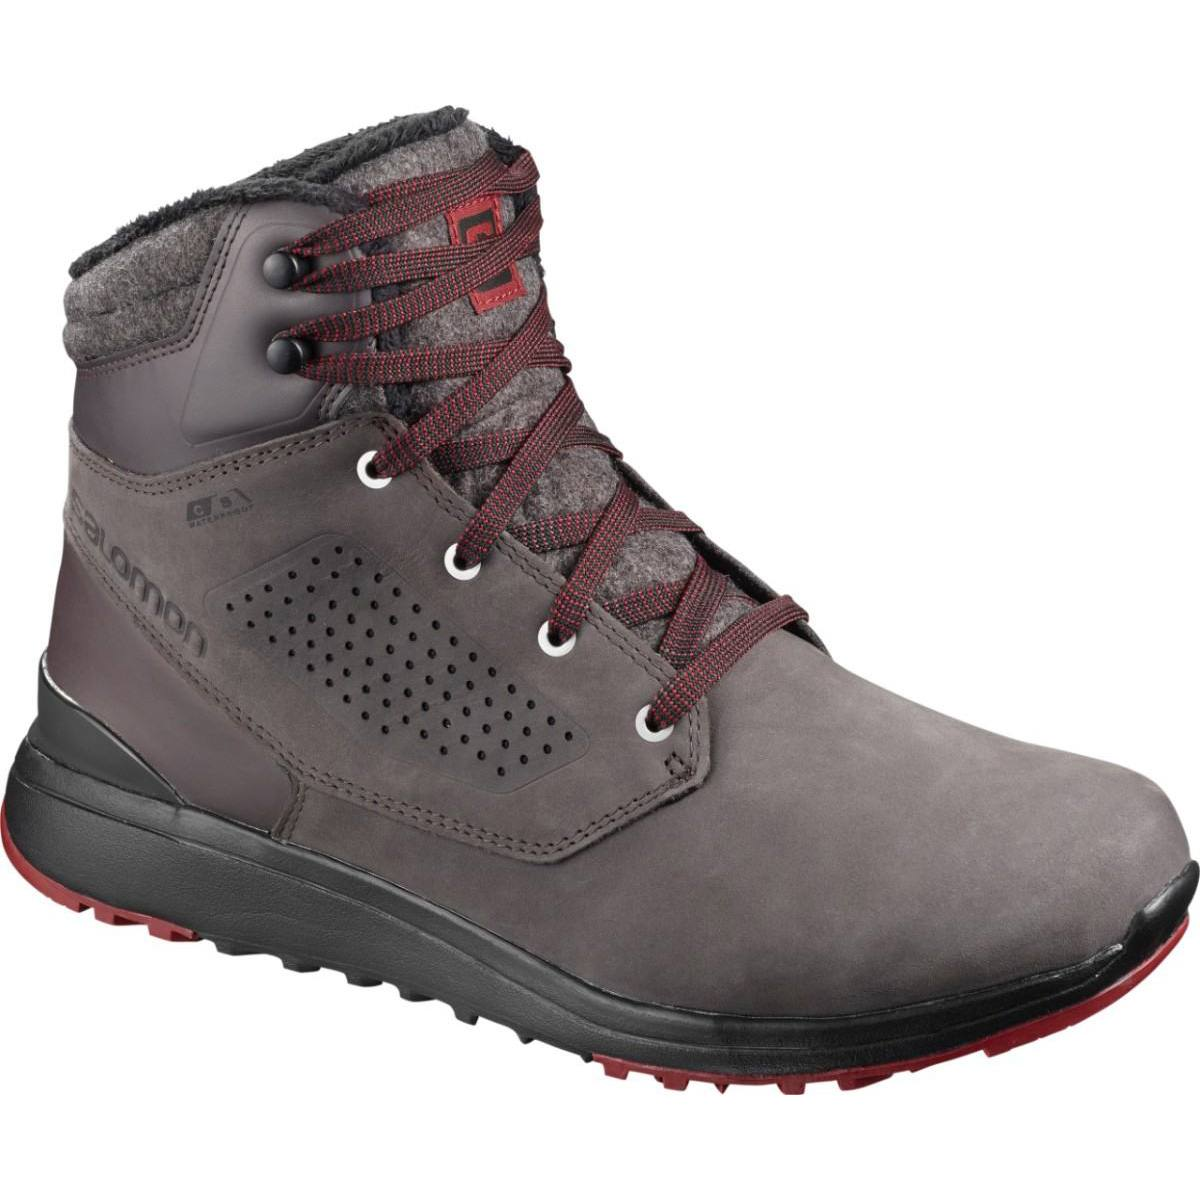 Salomon Ghete activitati urbane Salomon UTILITY WINTER CS WP - Gri